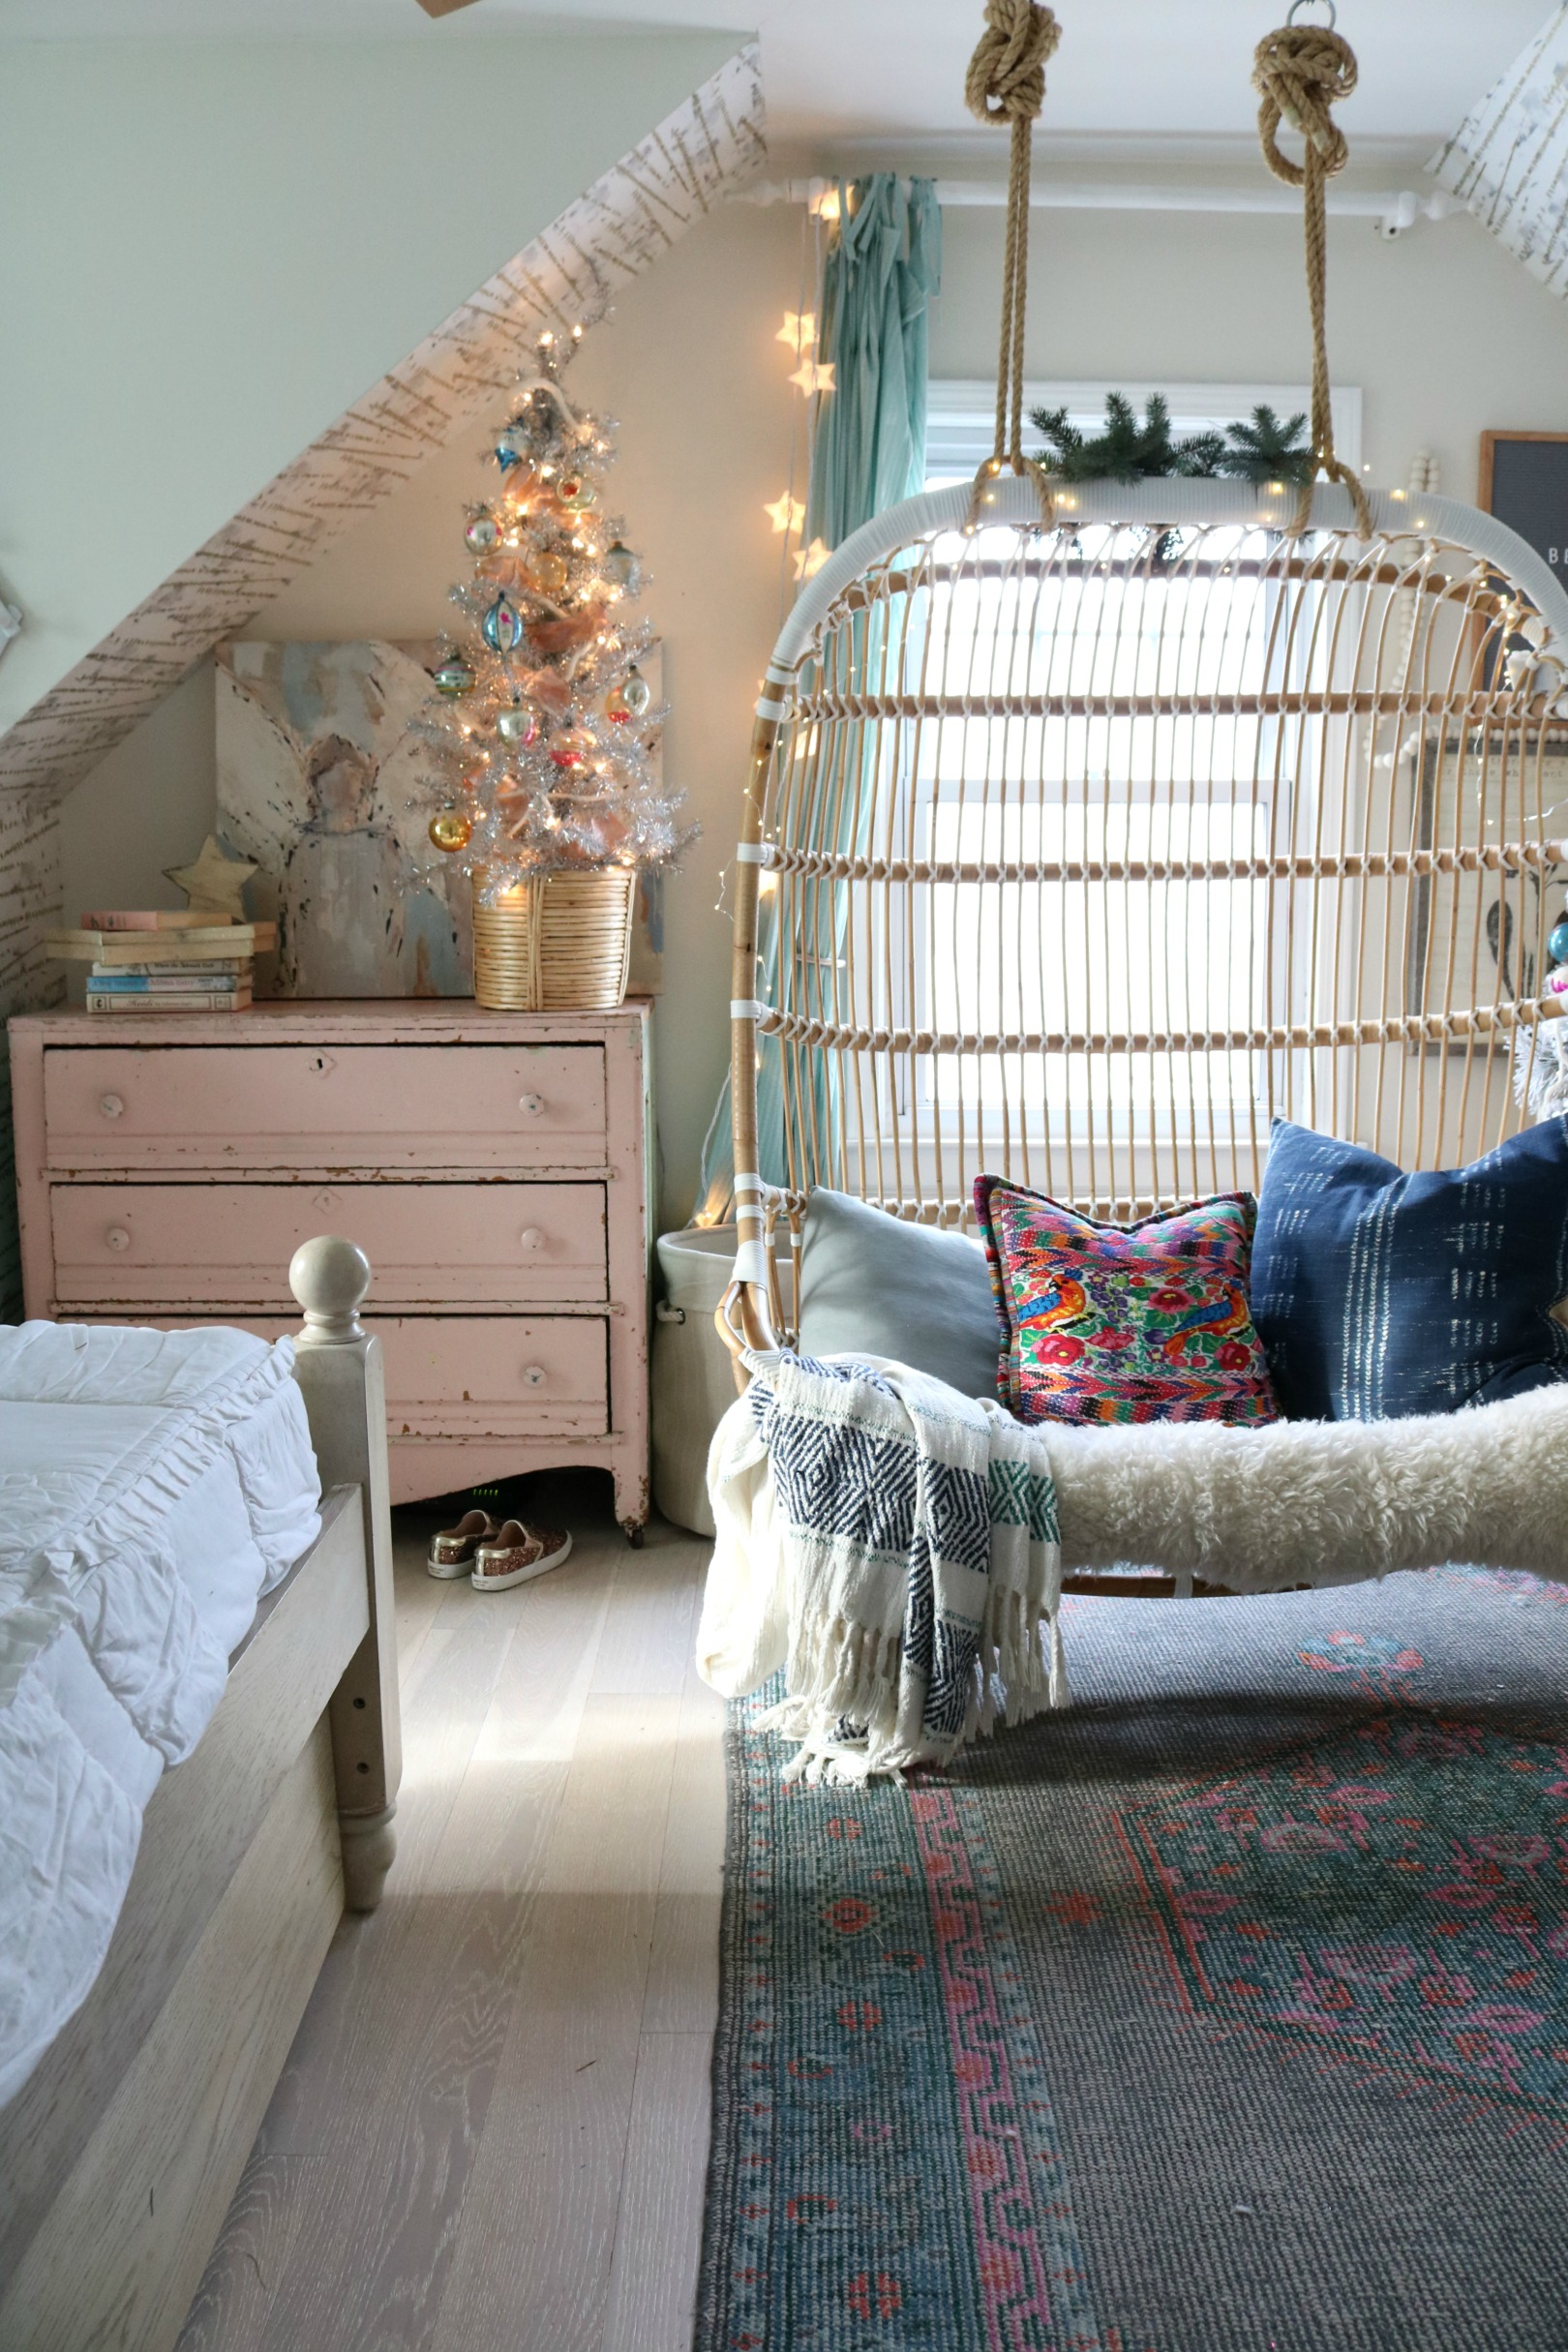 Christmas Decor in a Small Cape- Girls Shared Bedroom